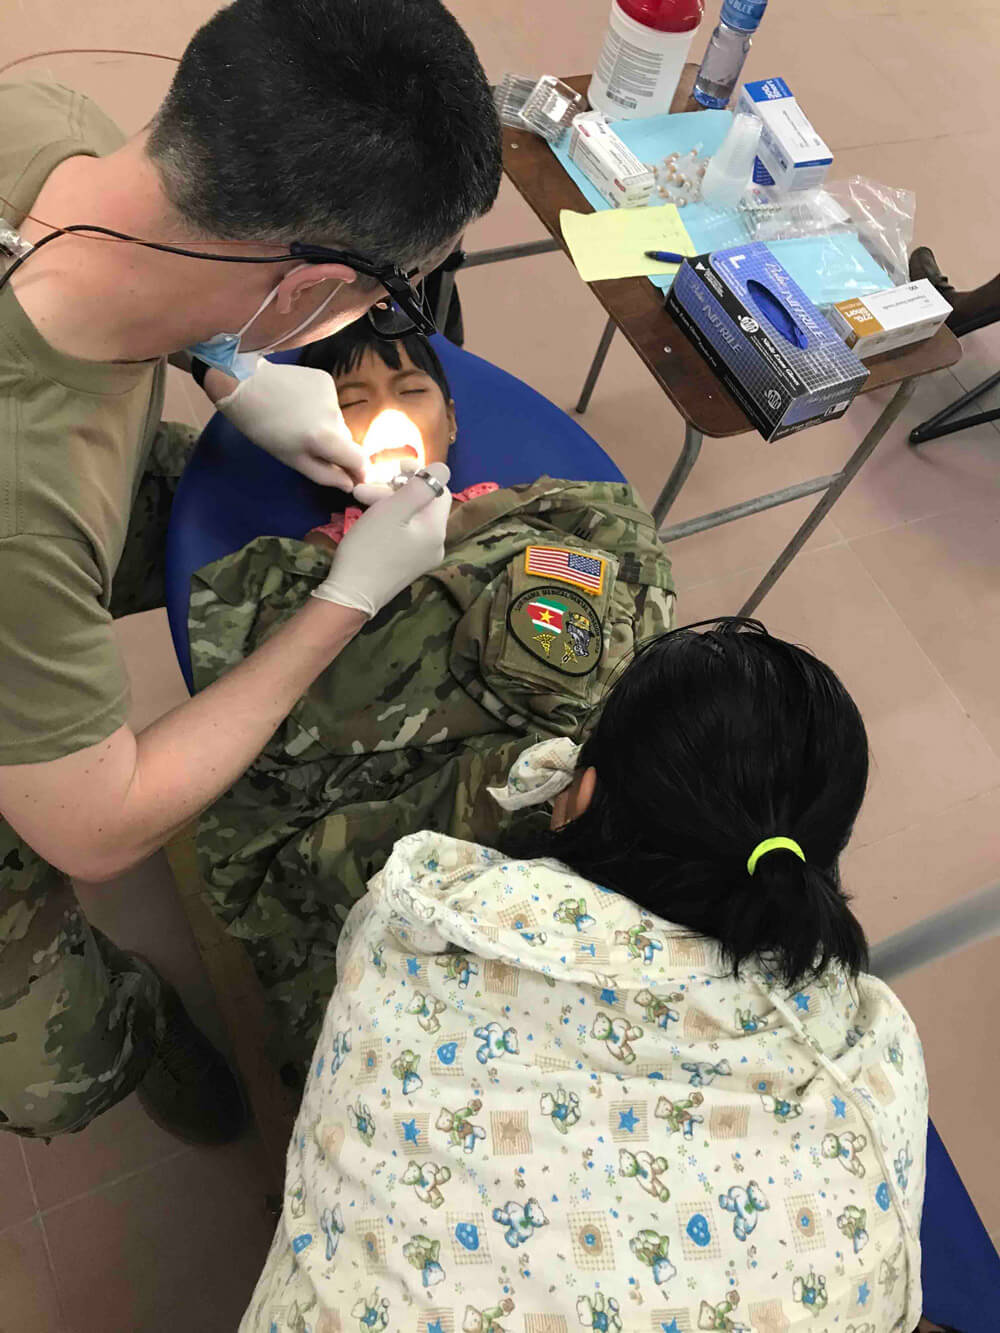 MAJ Kevin Donlin, a dentist with the South Dakota National Guard, performs a tooth extraction on a young girl as her mother watches in Albina, Suriname, April 2019. South Dakota Army National Guard photos by LTC Anthony Deiss